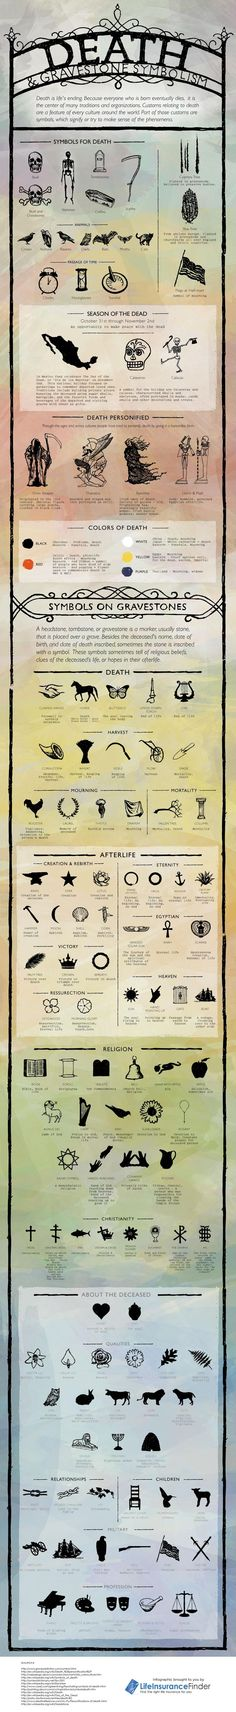 To subtly suggest death, filmmakers may incorporate these death symbols into their films.